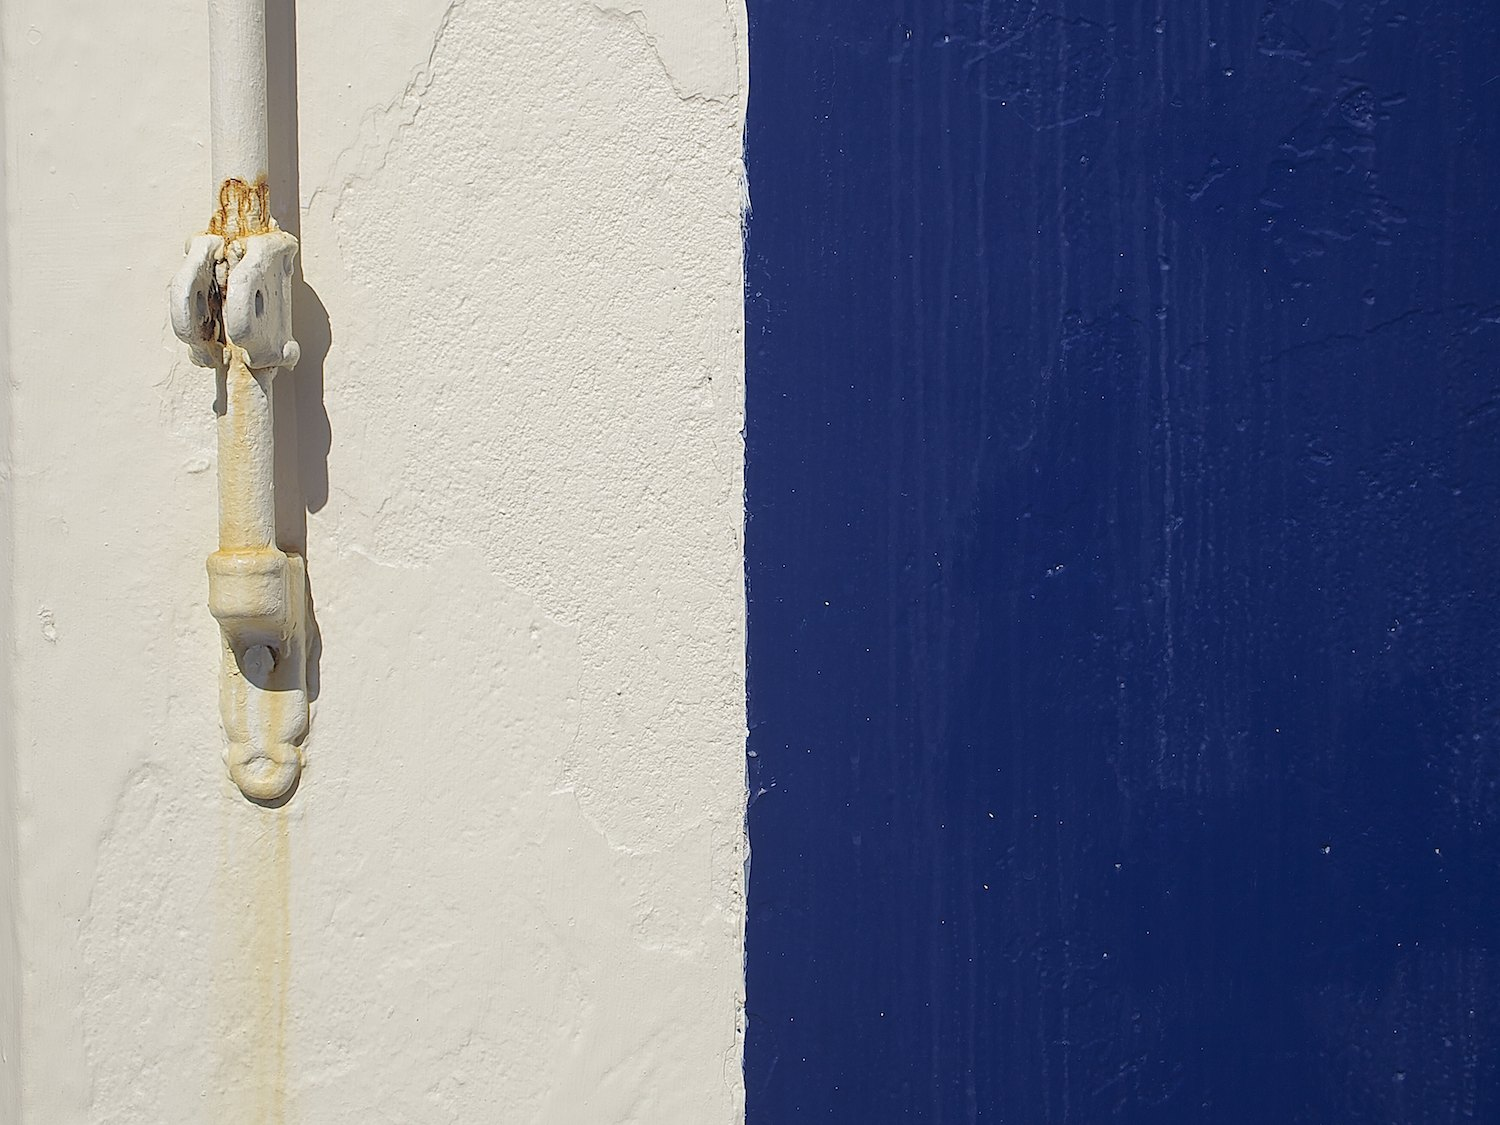 Christopher-Swan-Mull-Tobermory-Colours-abstract 102014-04-18.jpg